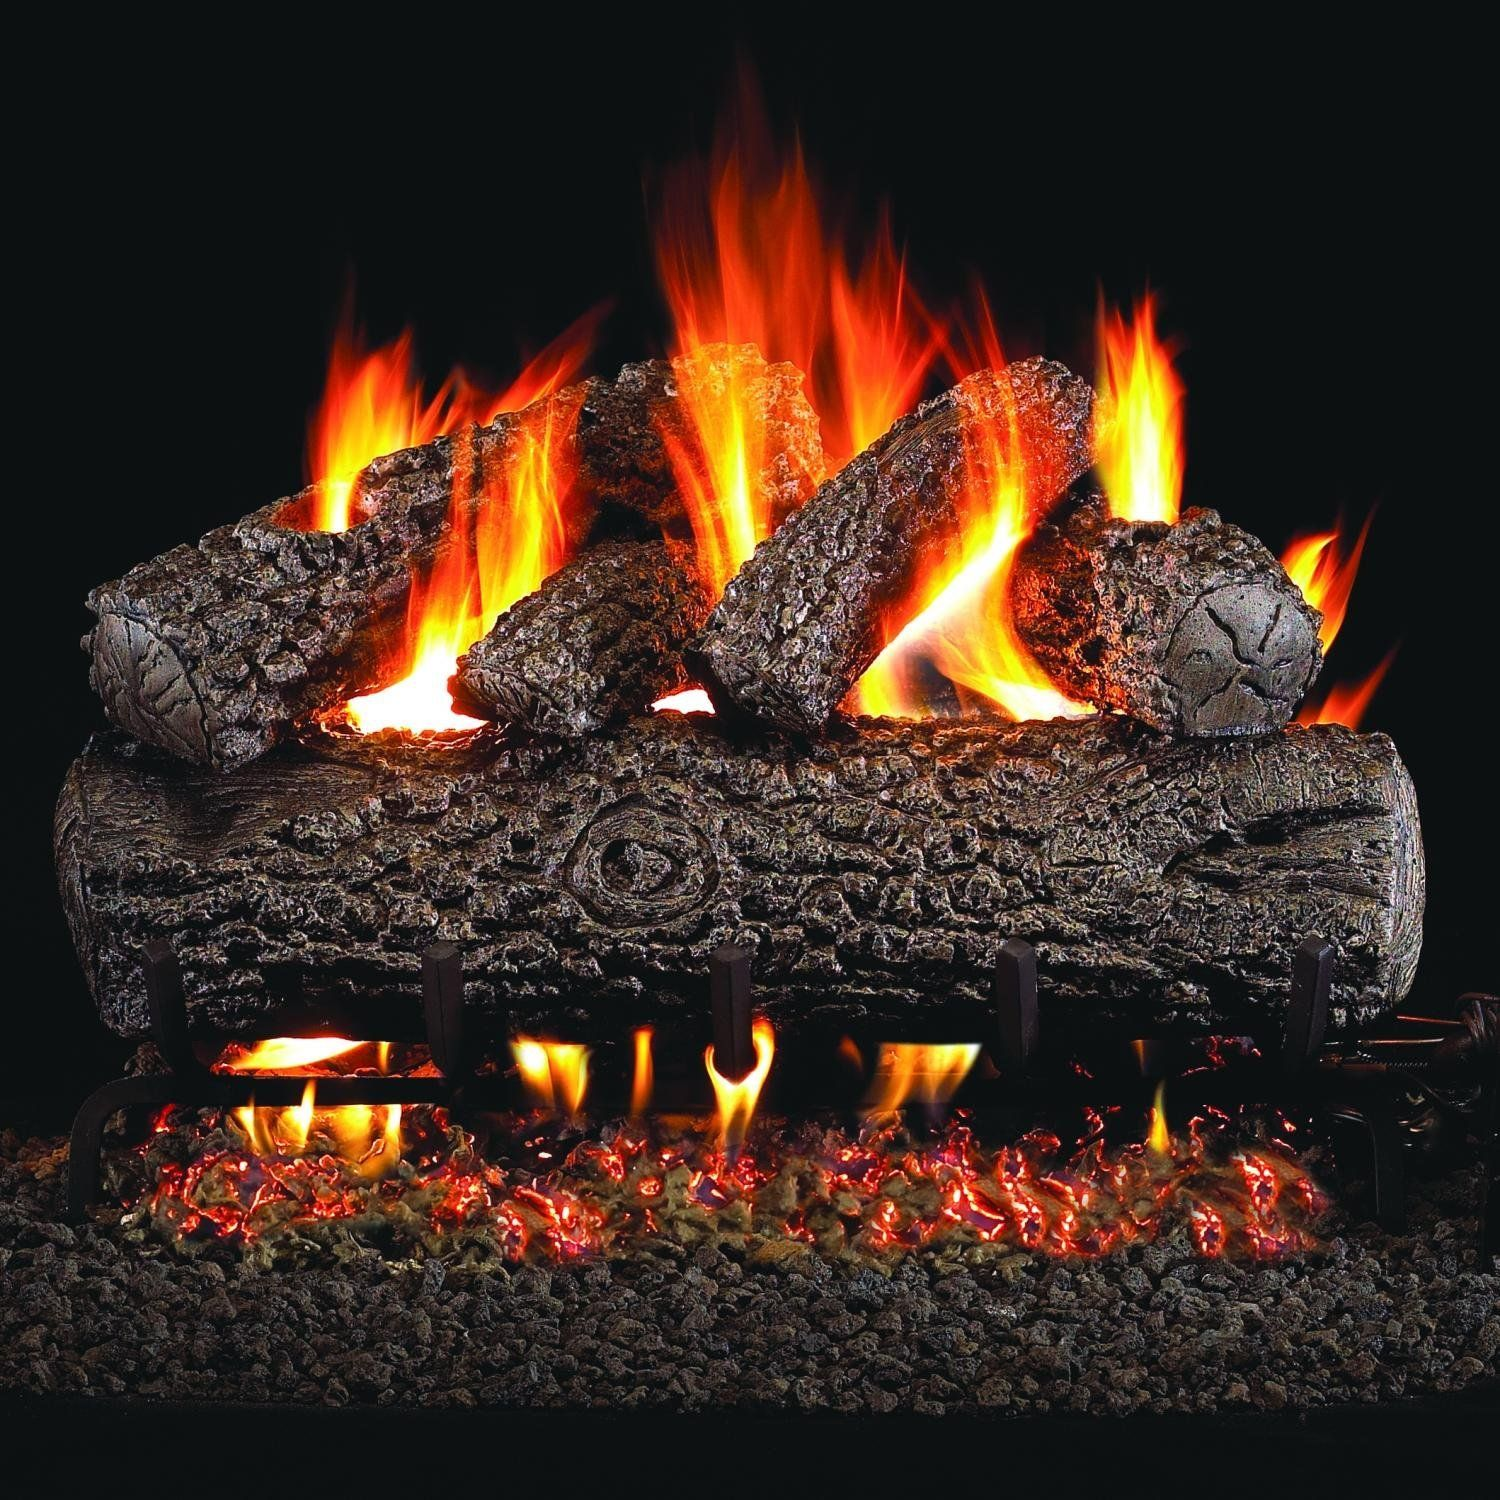 25 Fireplace Decorating Ideas With Gas Logs Electric Logs And Glass Rocks Electric Logs Gas Logs Fireplace Inserts